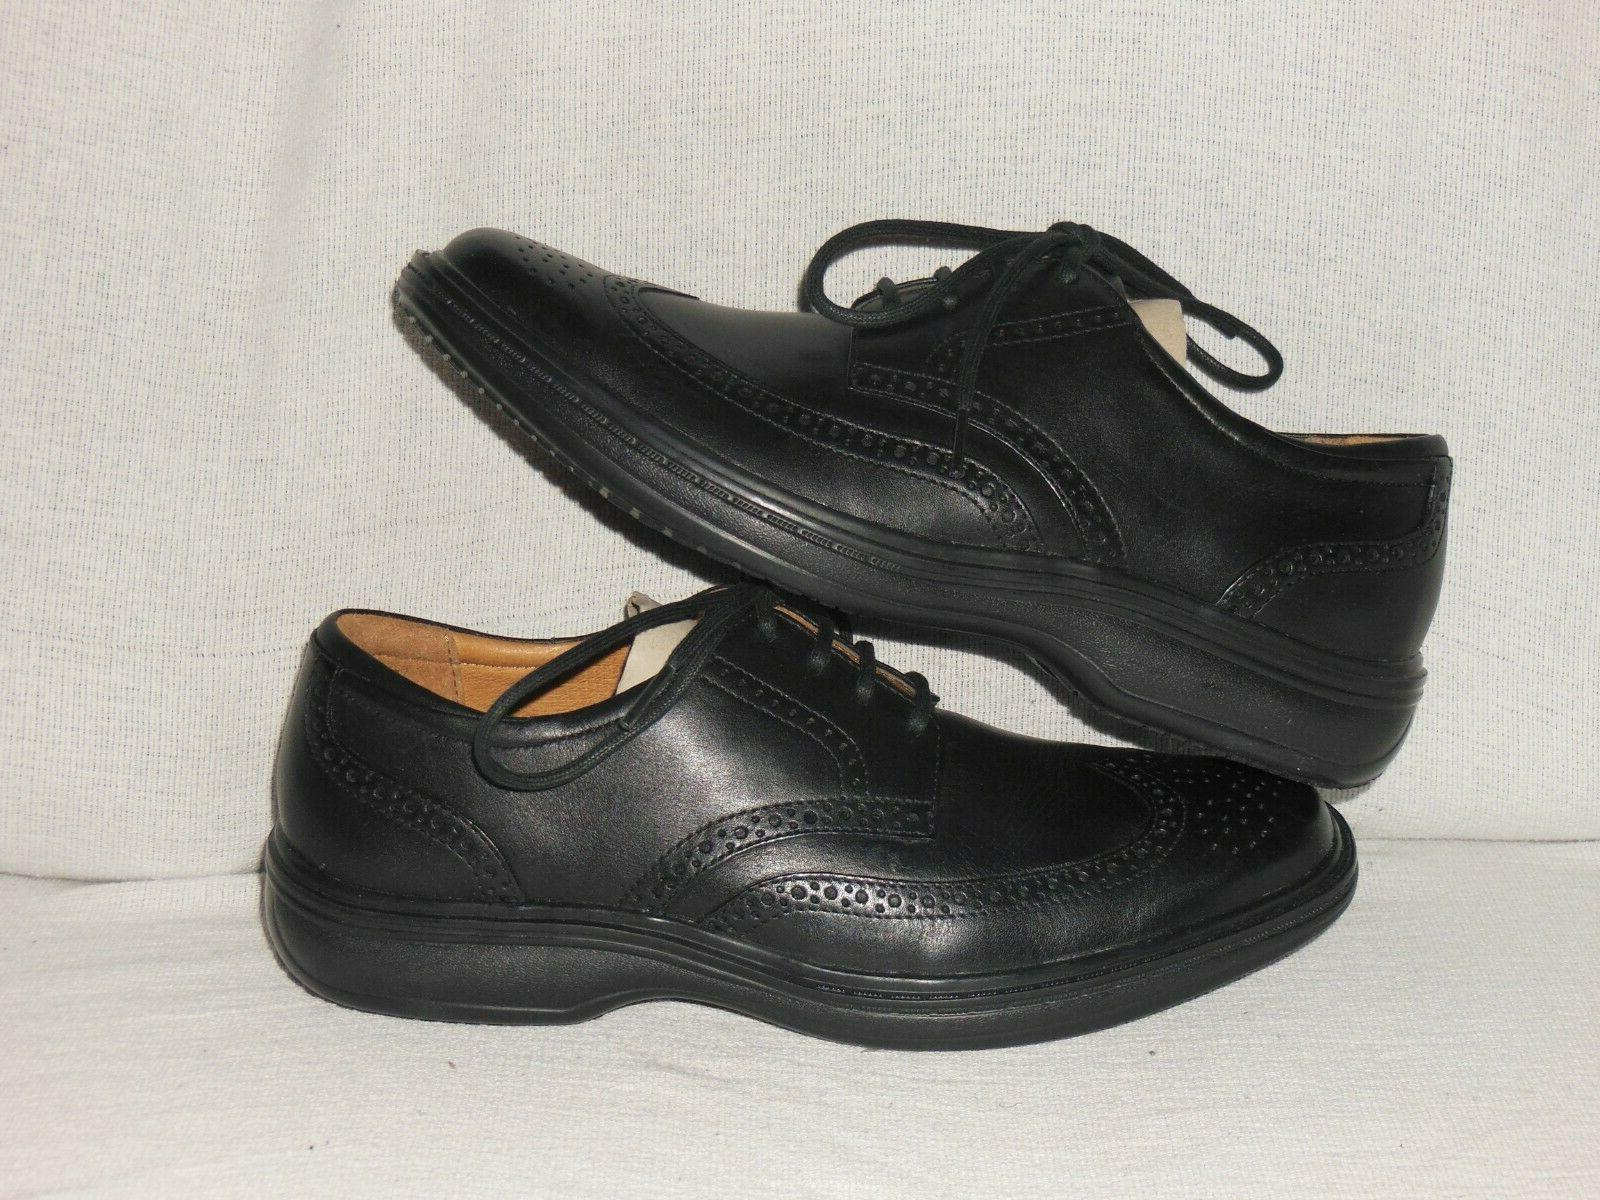 Dr. Wing Therapeutic Dress Shoes Men's M